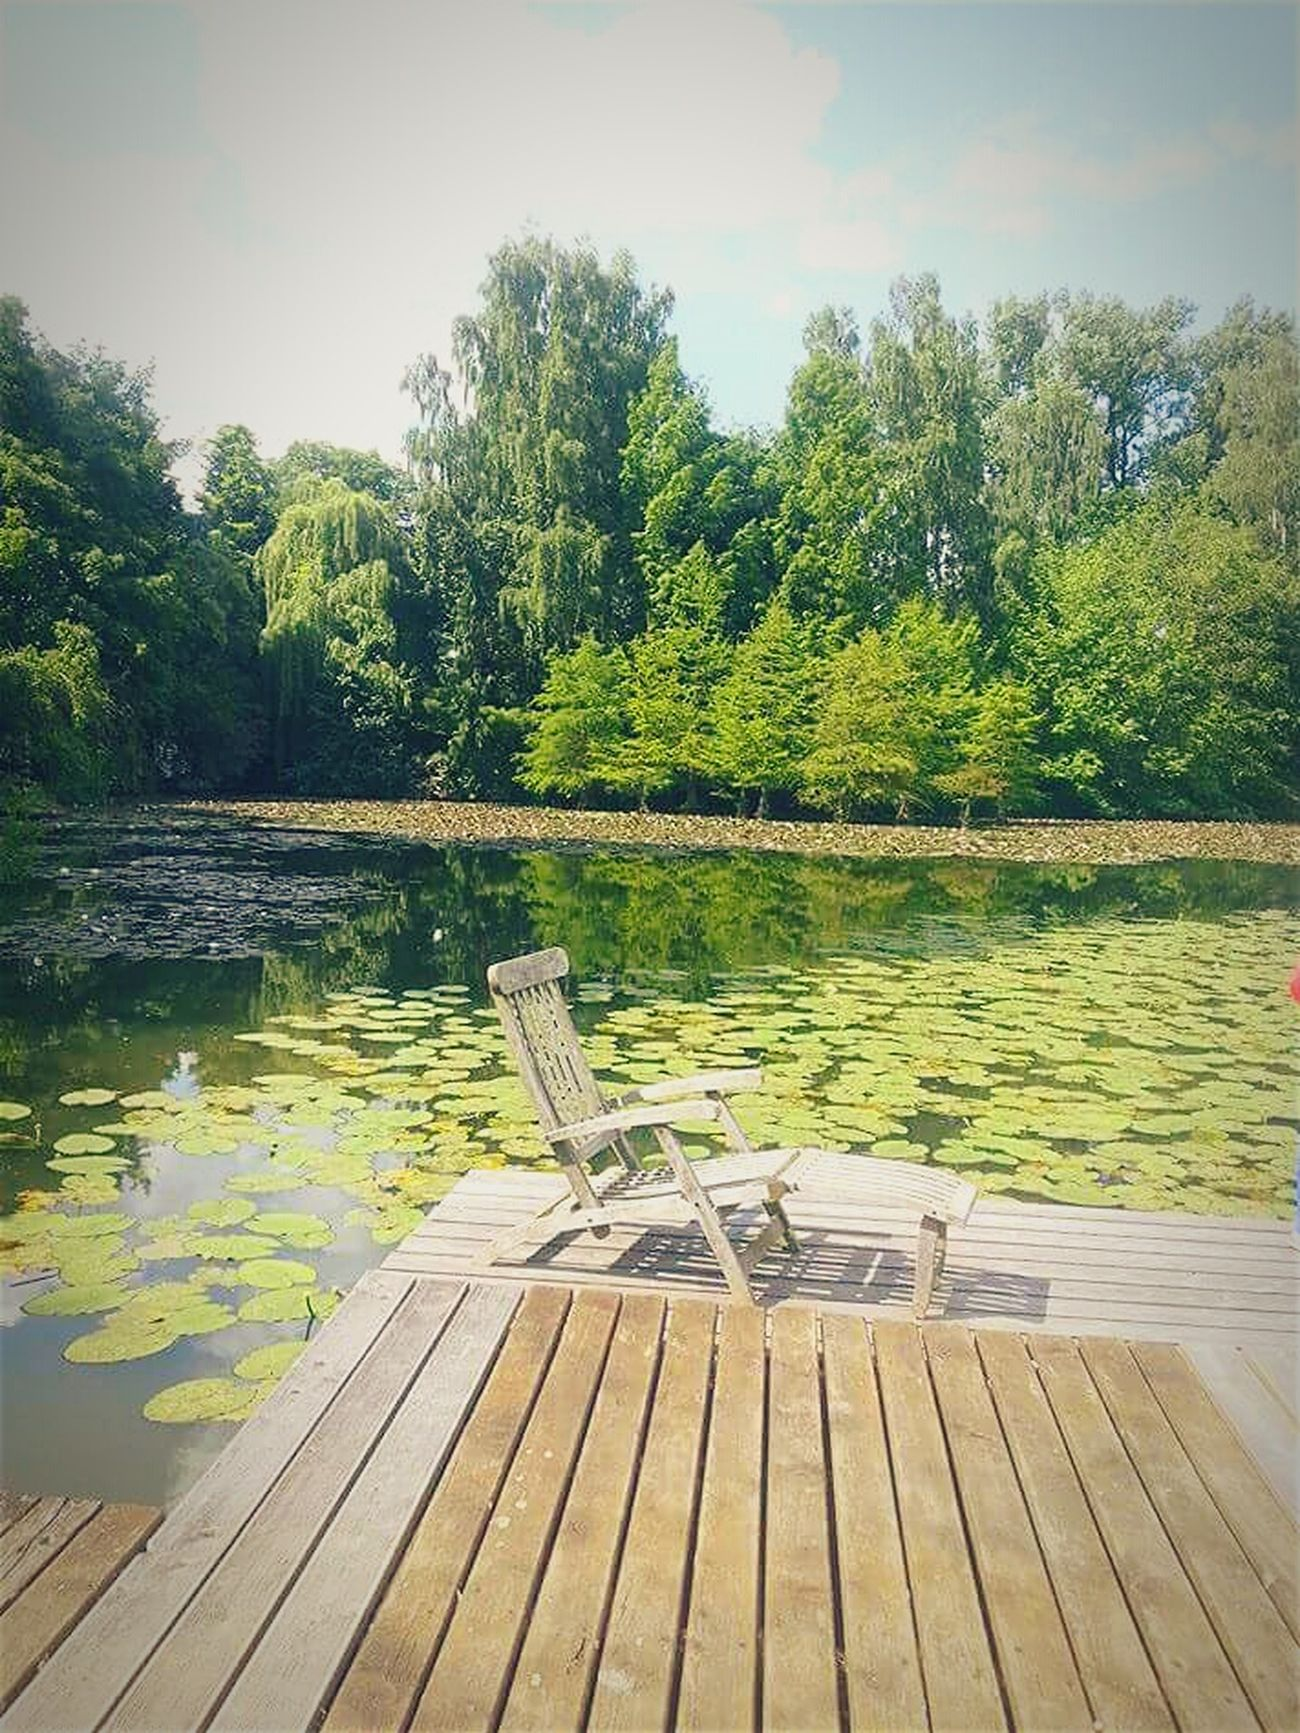 Relaxing Lake View Lovely Place Enjoying The View EyeEm Best Shots - Nature Eye Em Nature Lover Springtime Lakeside